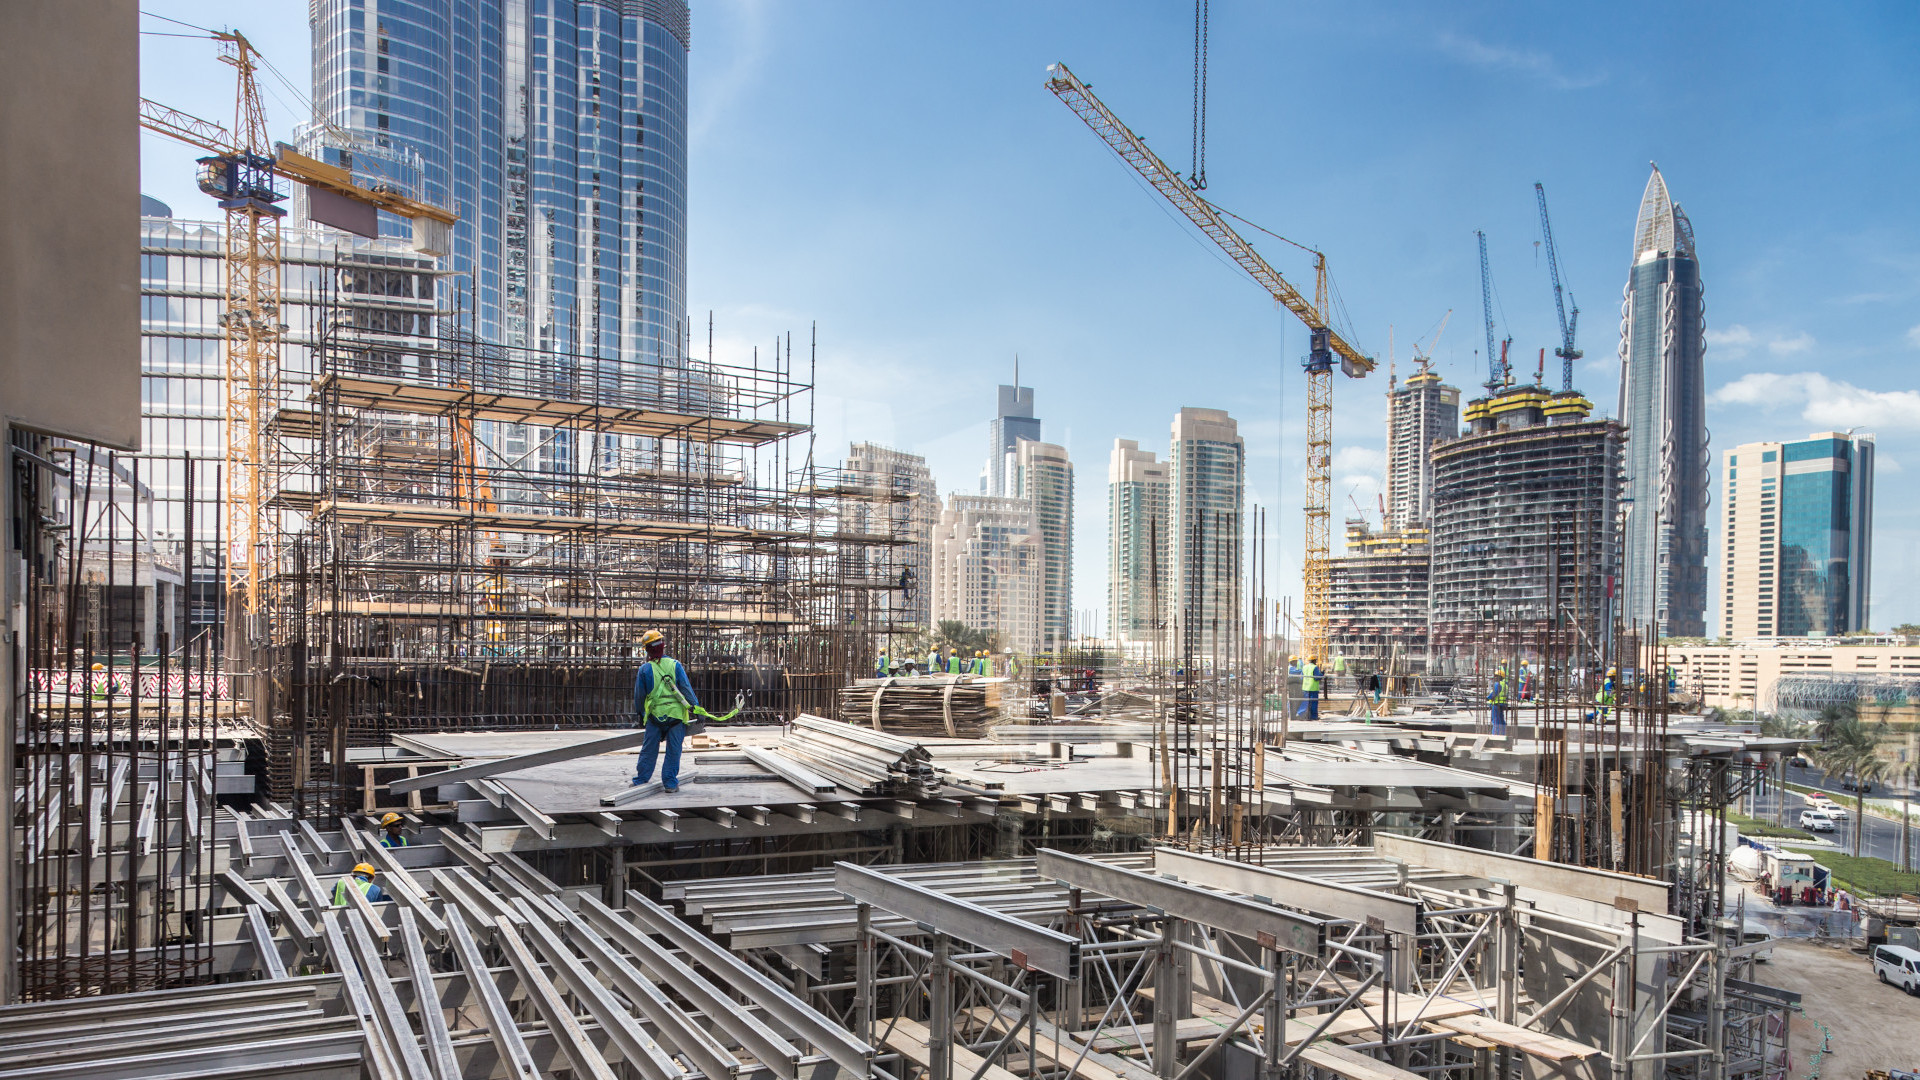 Construction site in Dubai. Virtual background to use on Zoom, Microsoft Teams, Skype, Google Meet, WebEx or any other compatible app.